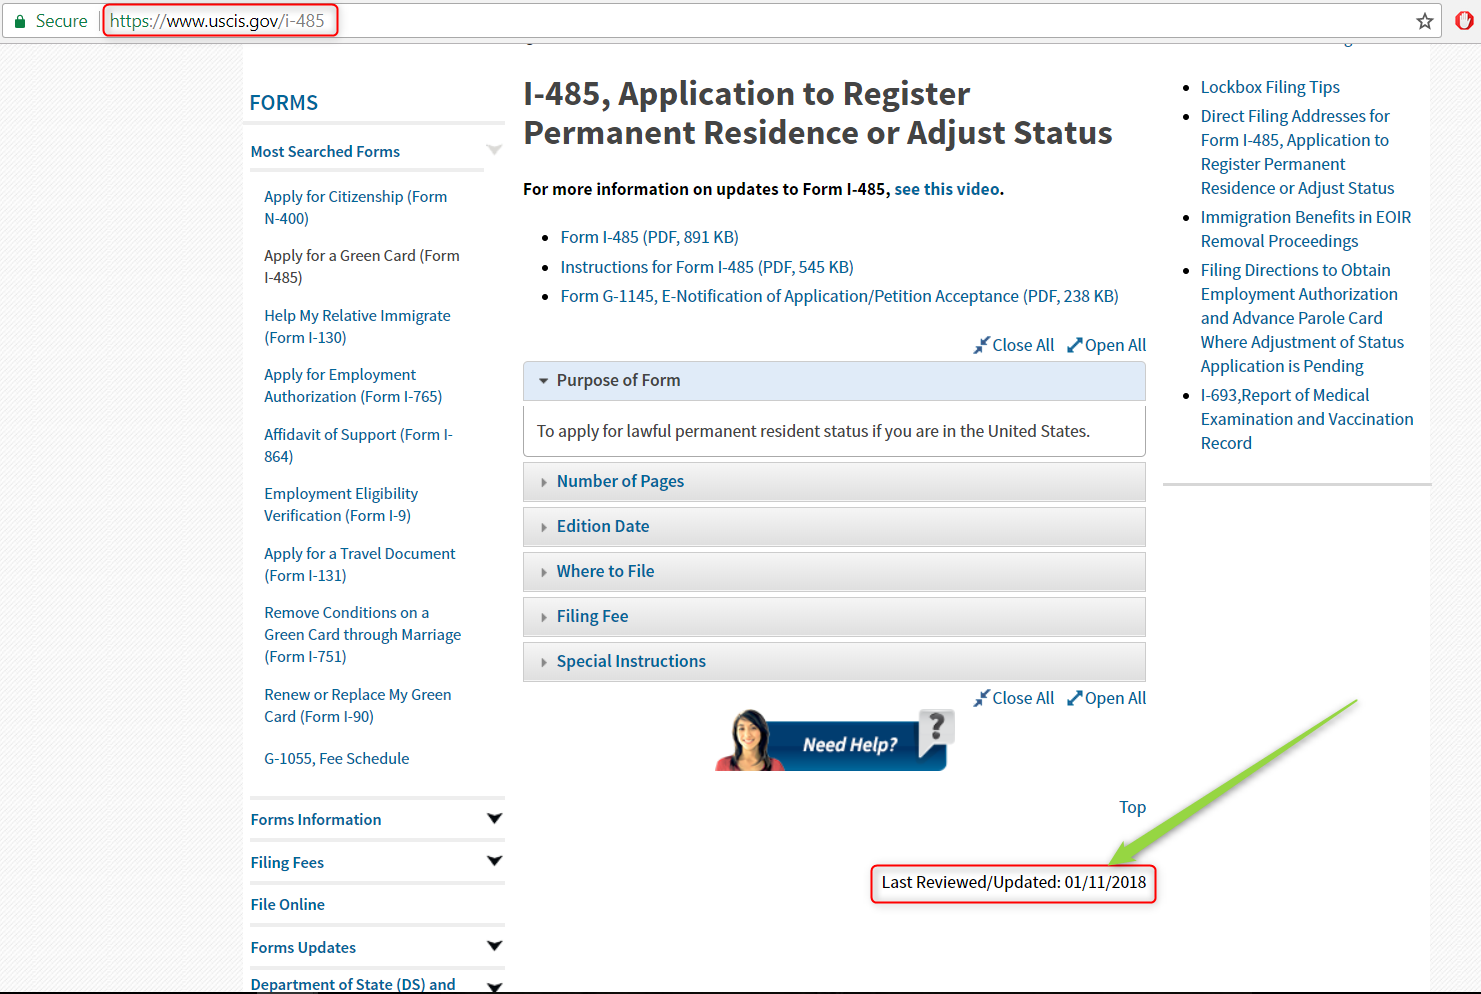 Adjustment of status rejected - Page 2 - Adjustment of